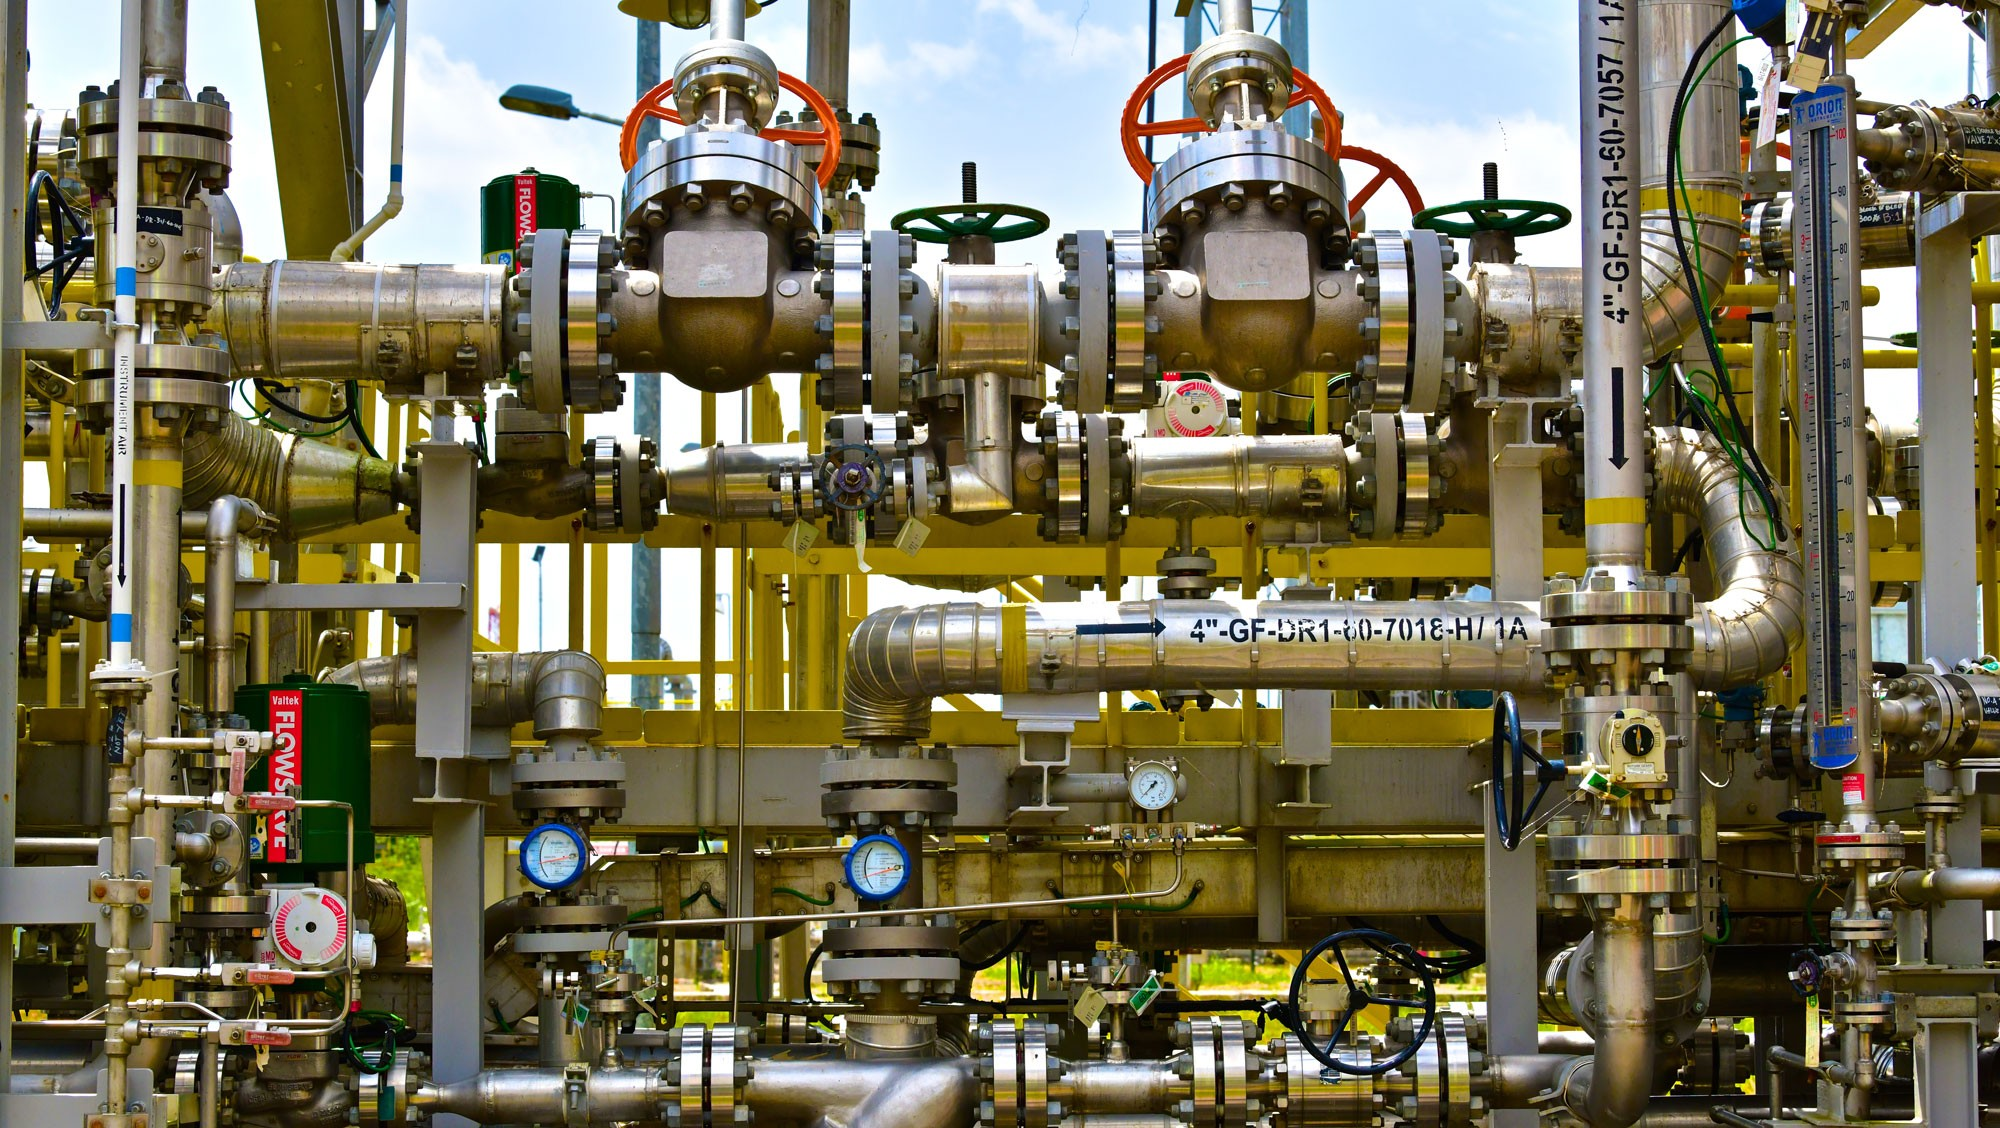 A confluence of pipelines and valves